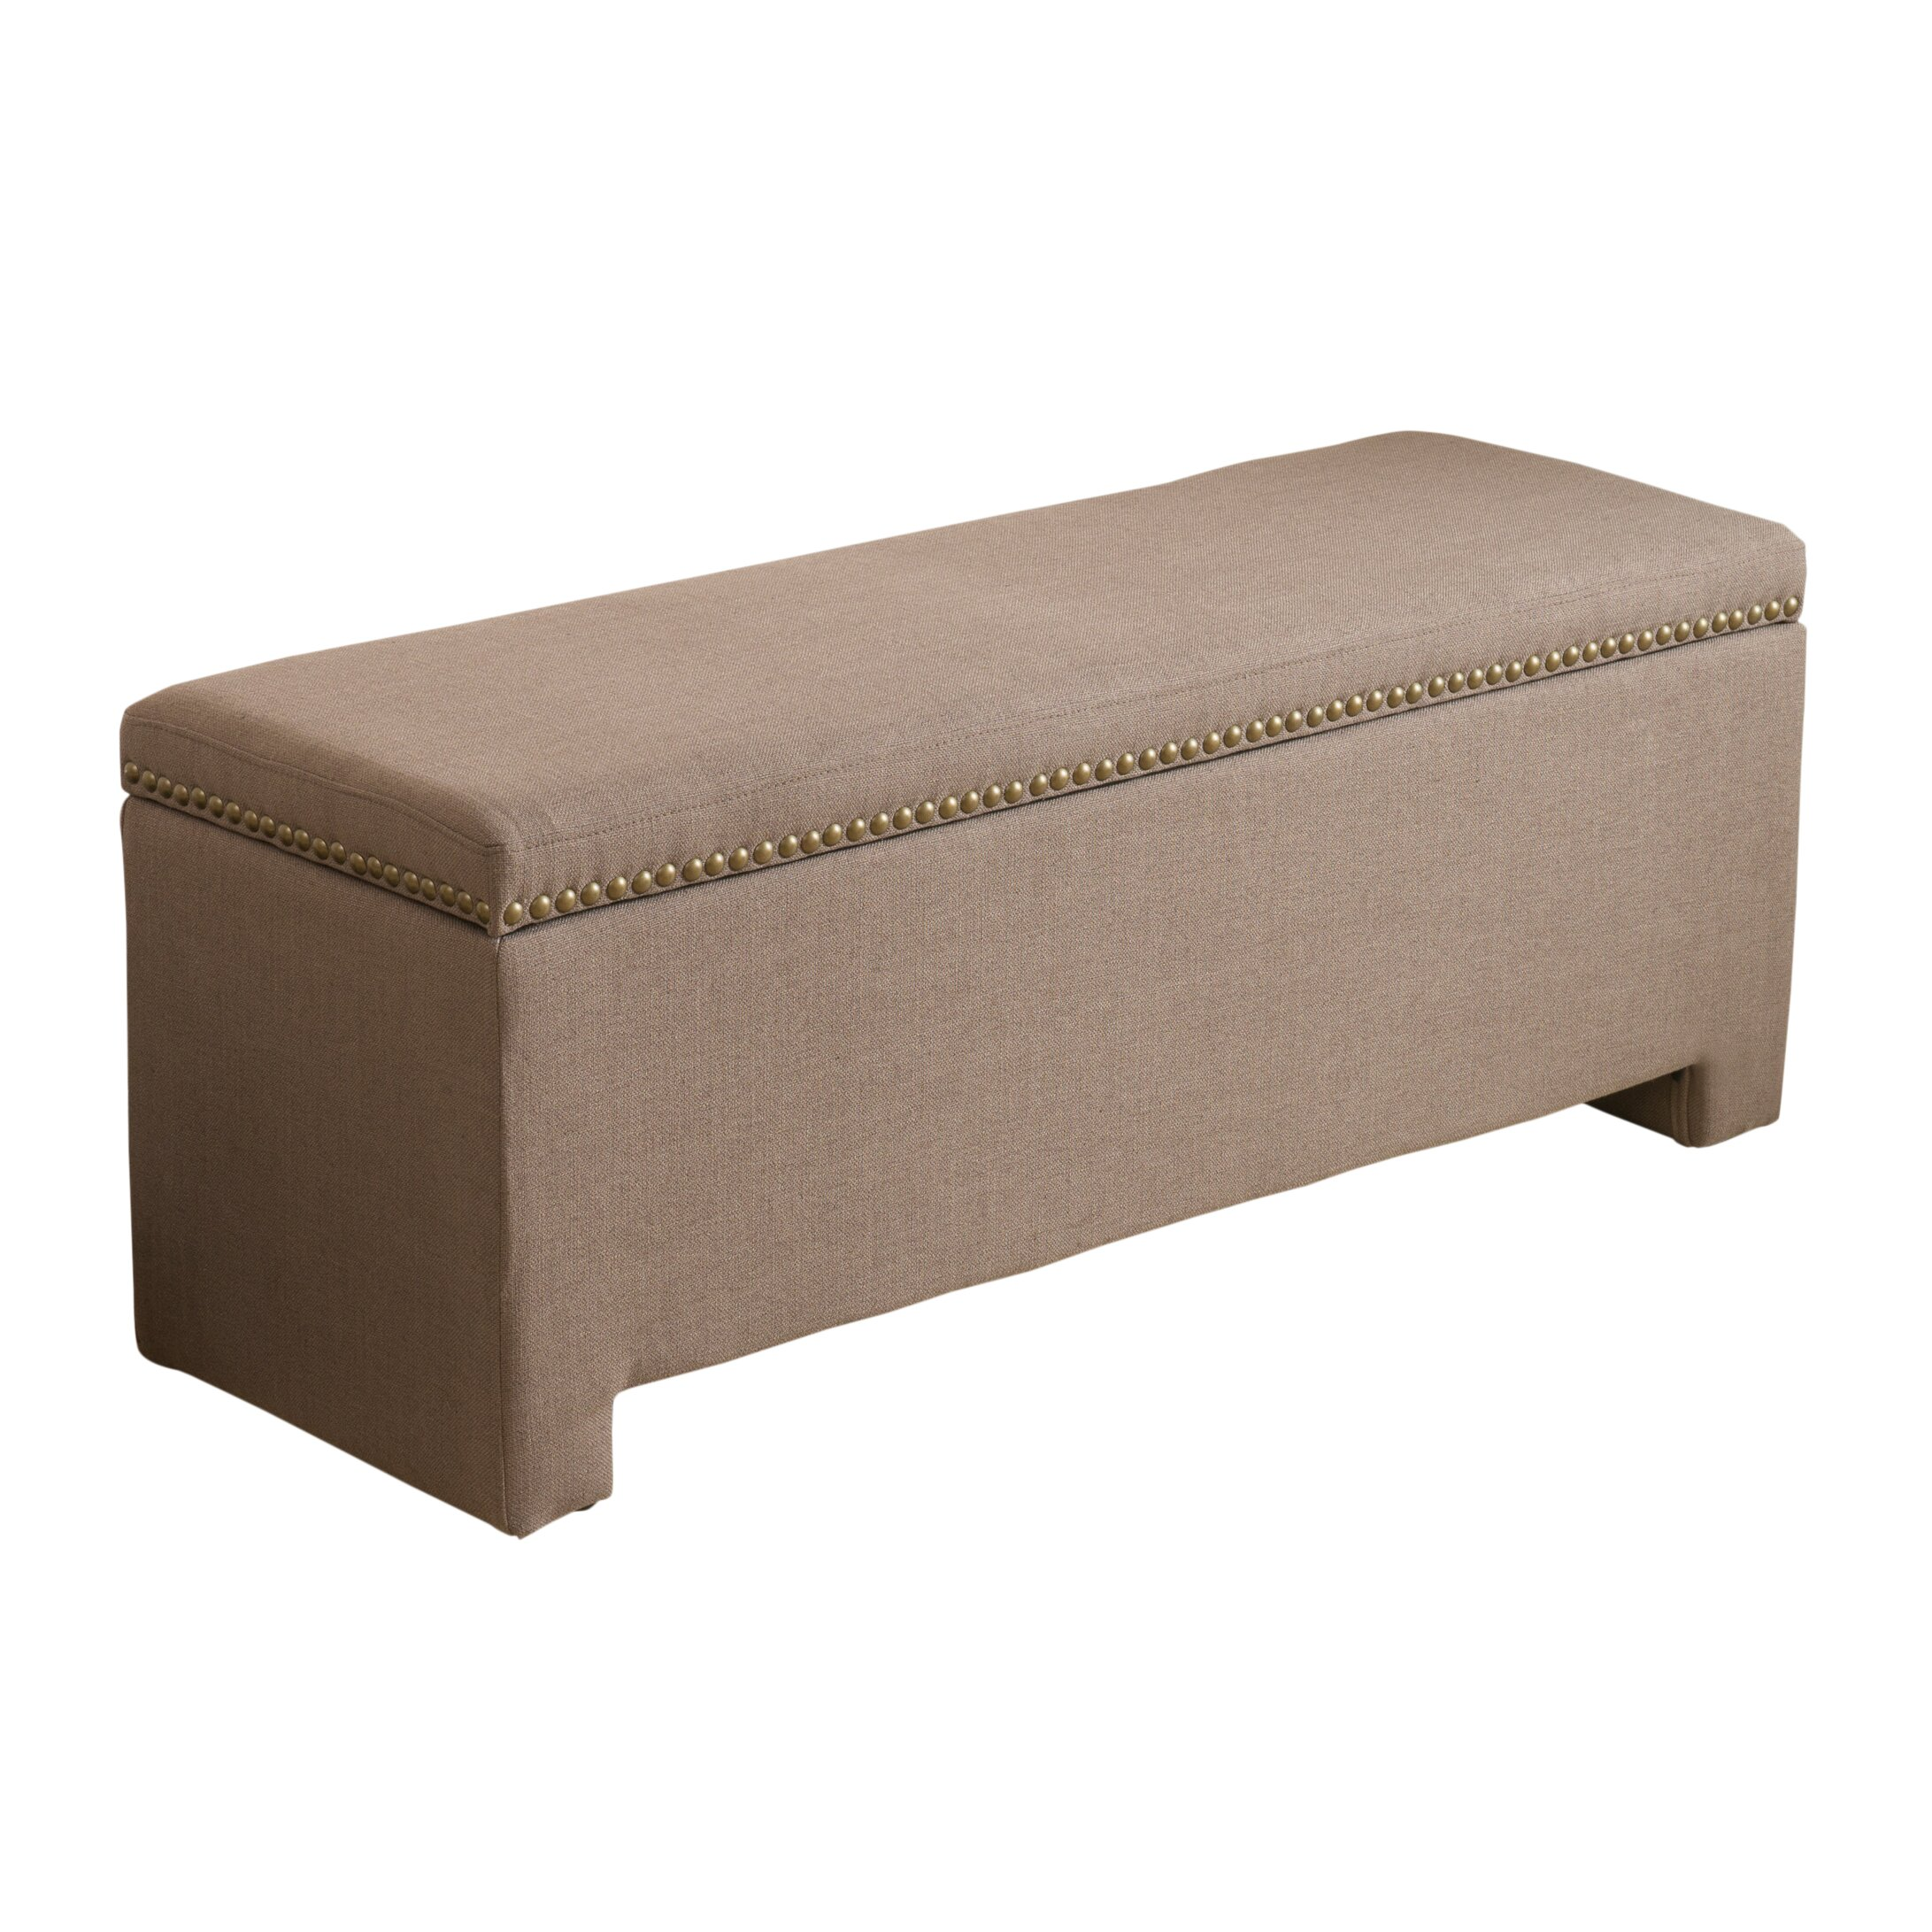 Alcott Hill Cloville Upholstered Storage Bedroom Bench Reviews Wayfair Supply